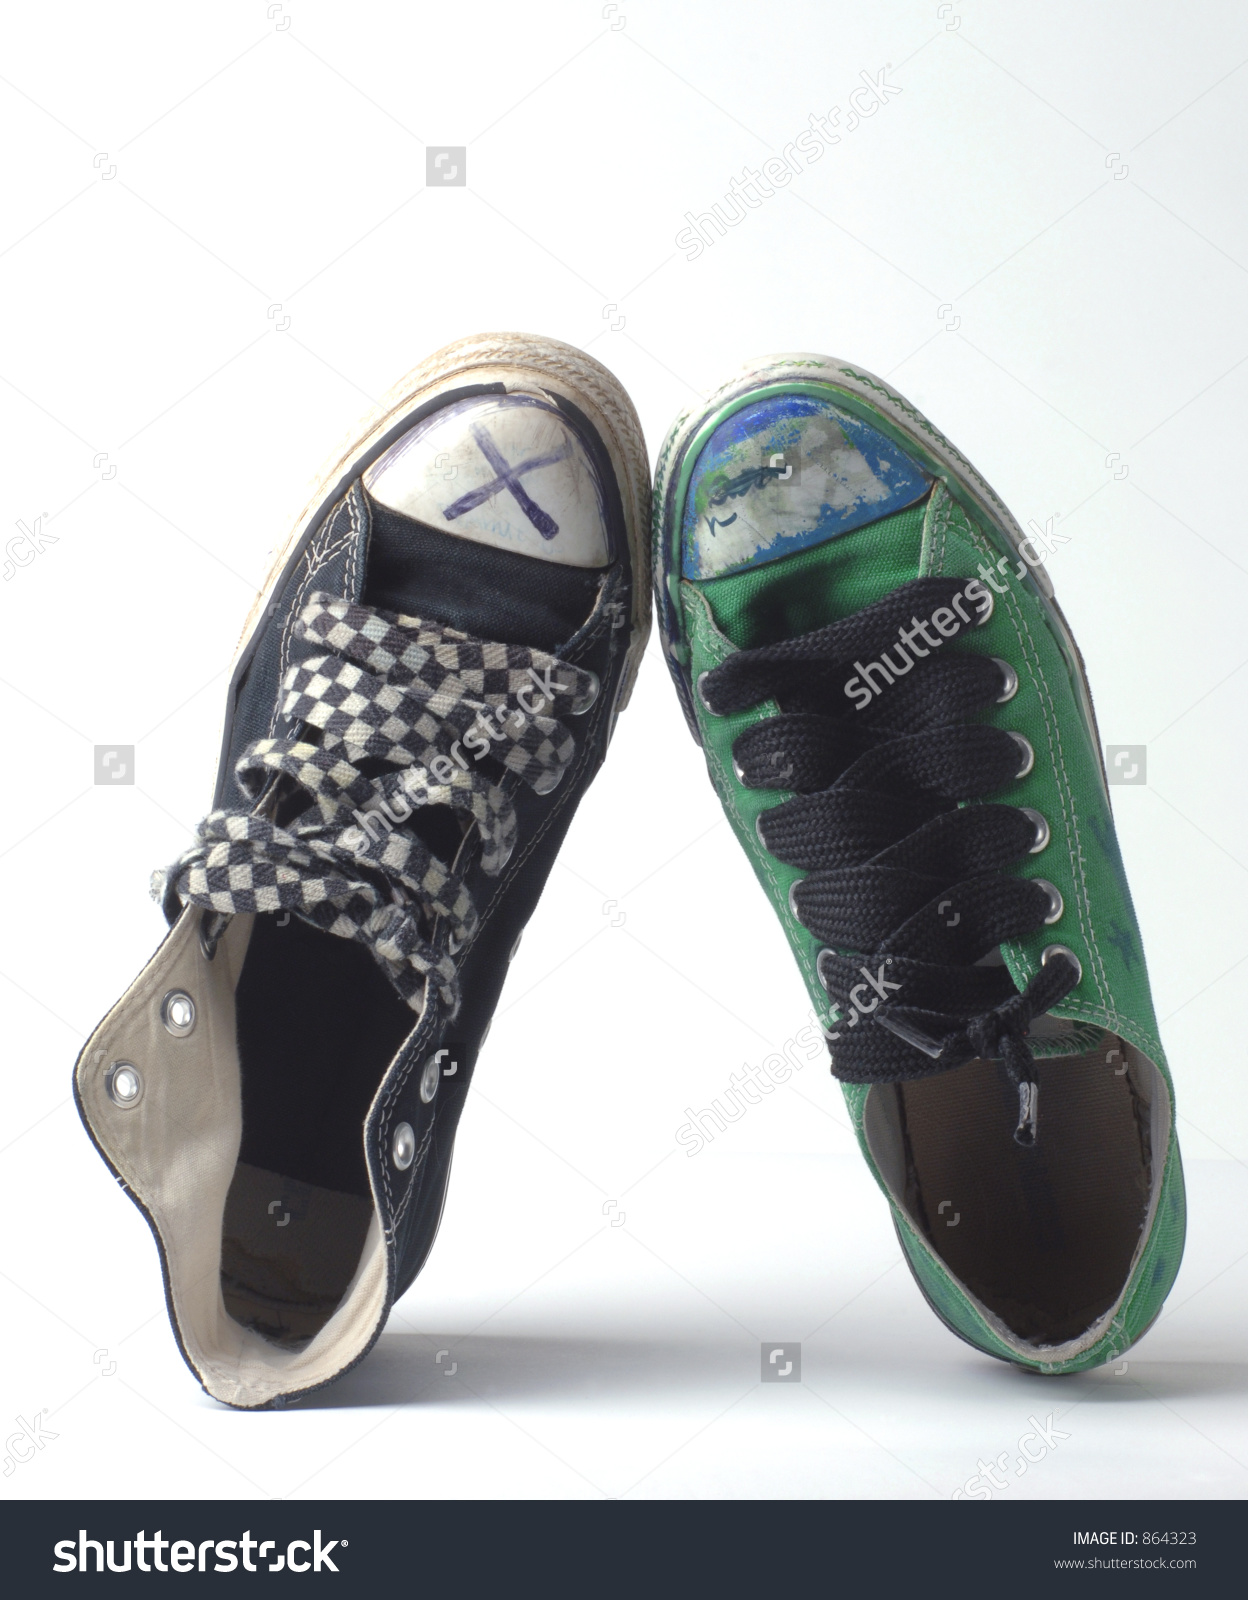 Pair Of Mismatched Shoes Stock Photo 864323 : Shutterstock.